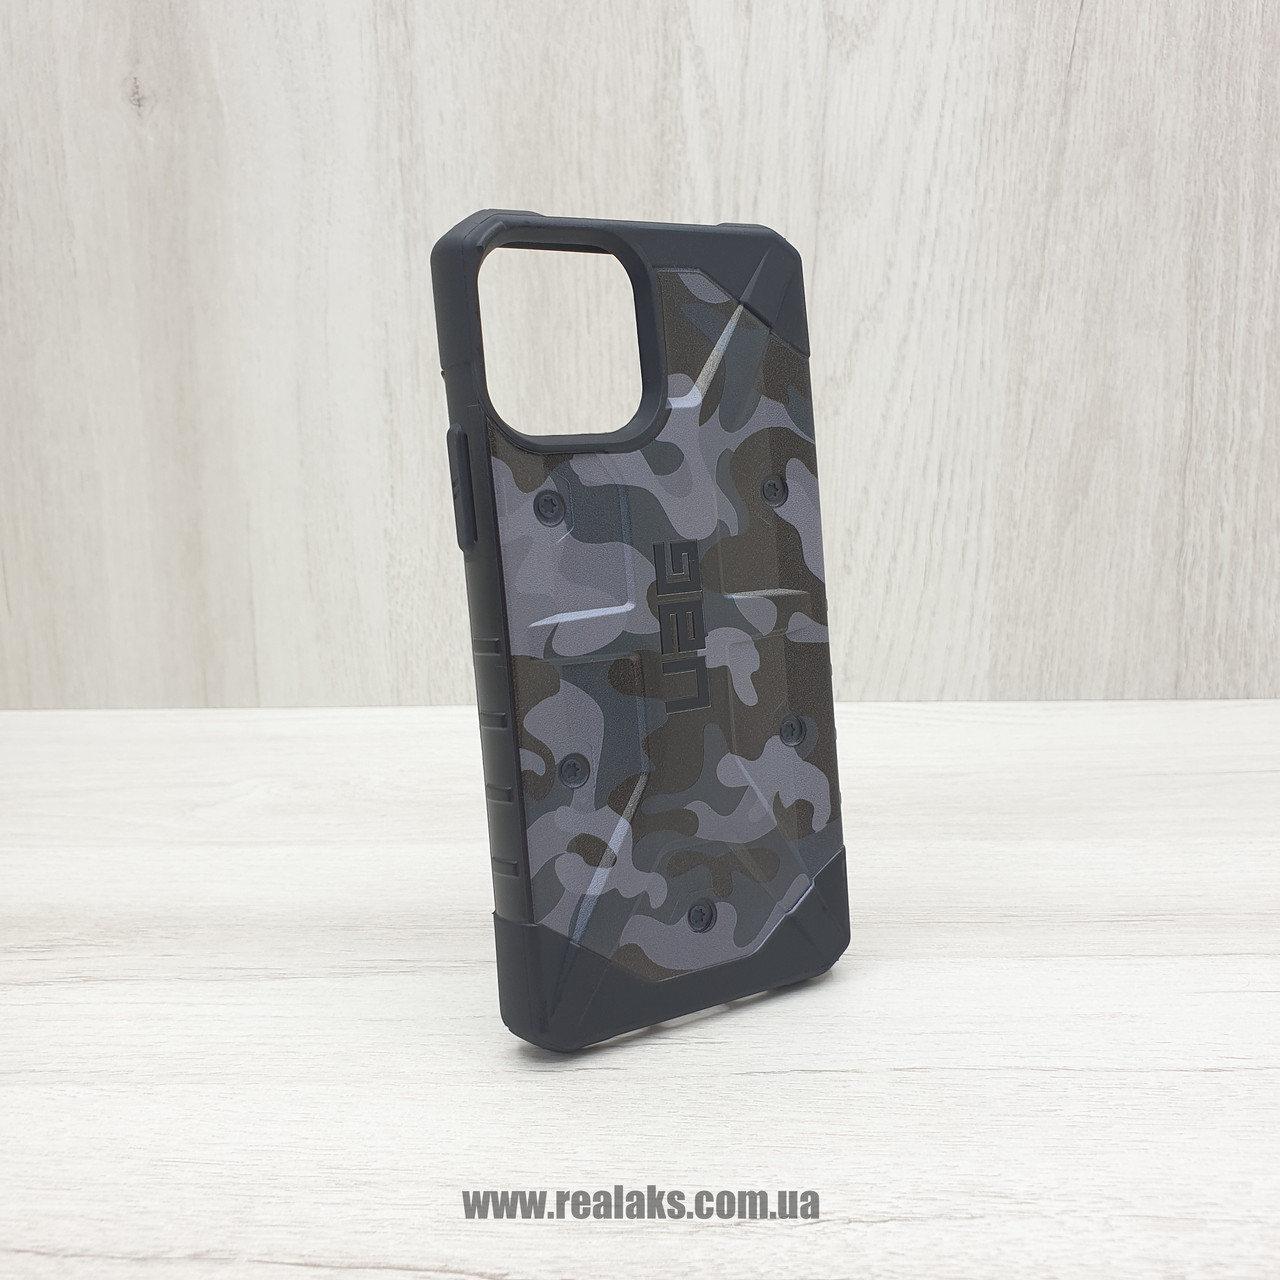 Чохол UAG копія Apple iPhone 11 / 11Pro / 11Pro Max grey/black